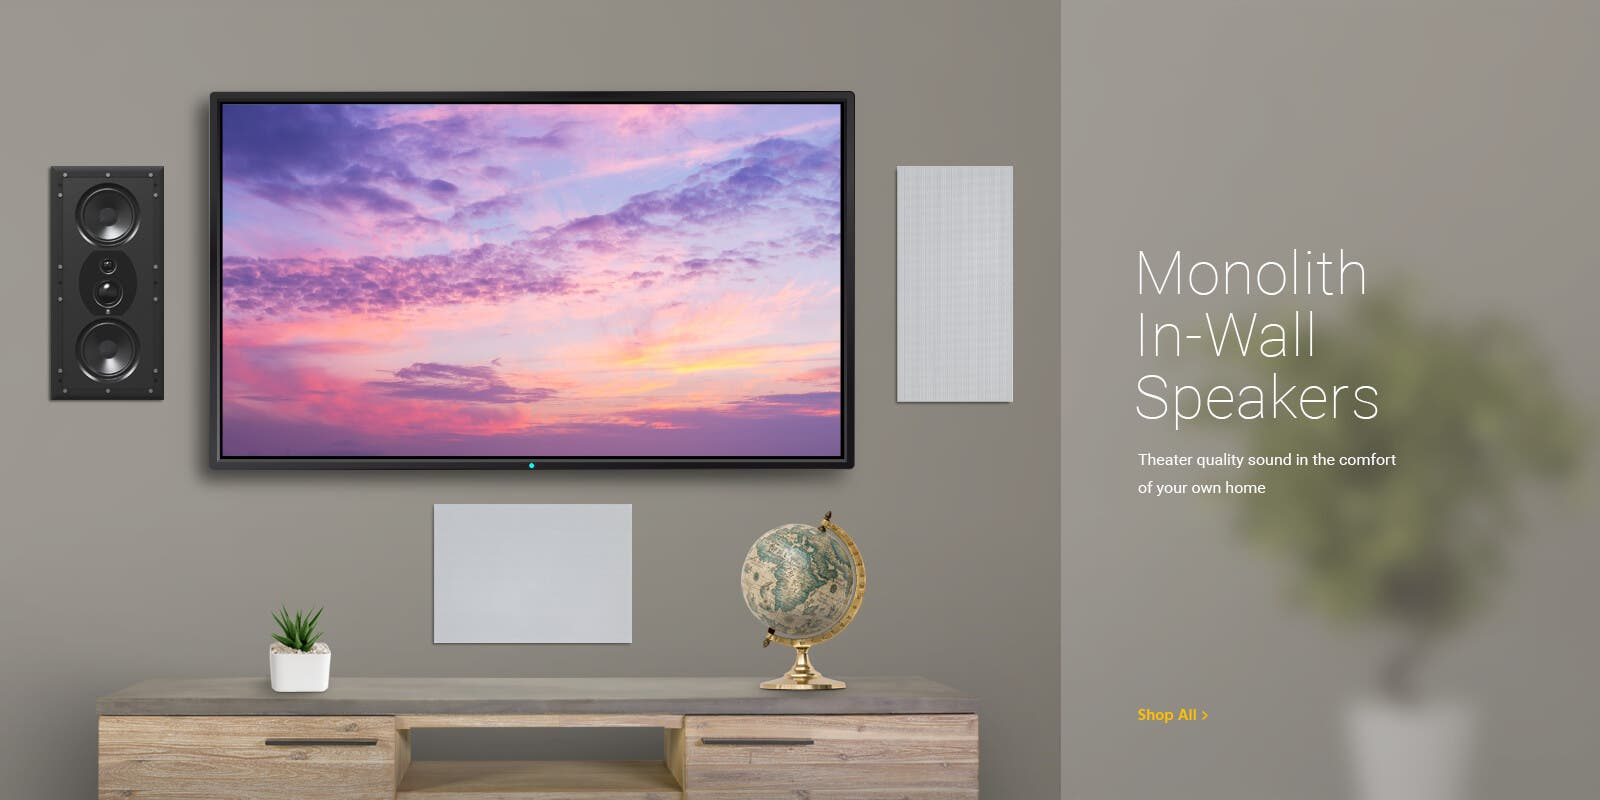 Monolith In-Wall Speakers, theater quality sound in the comfort of your own home. Shop All